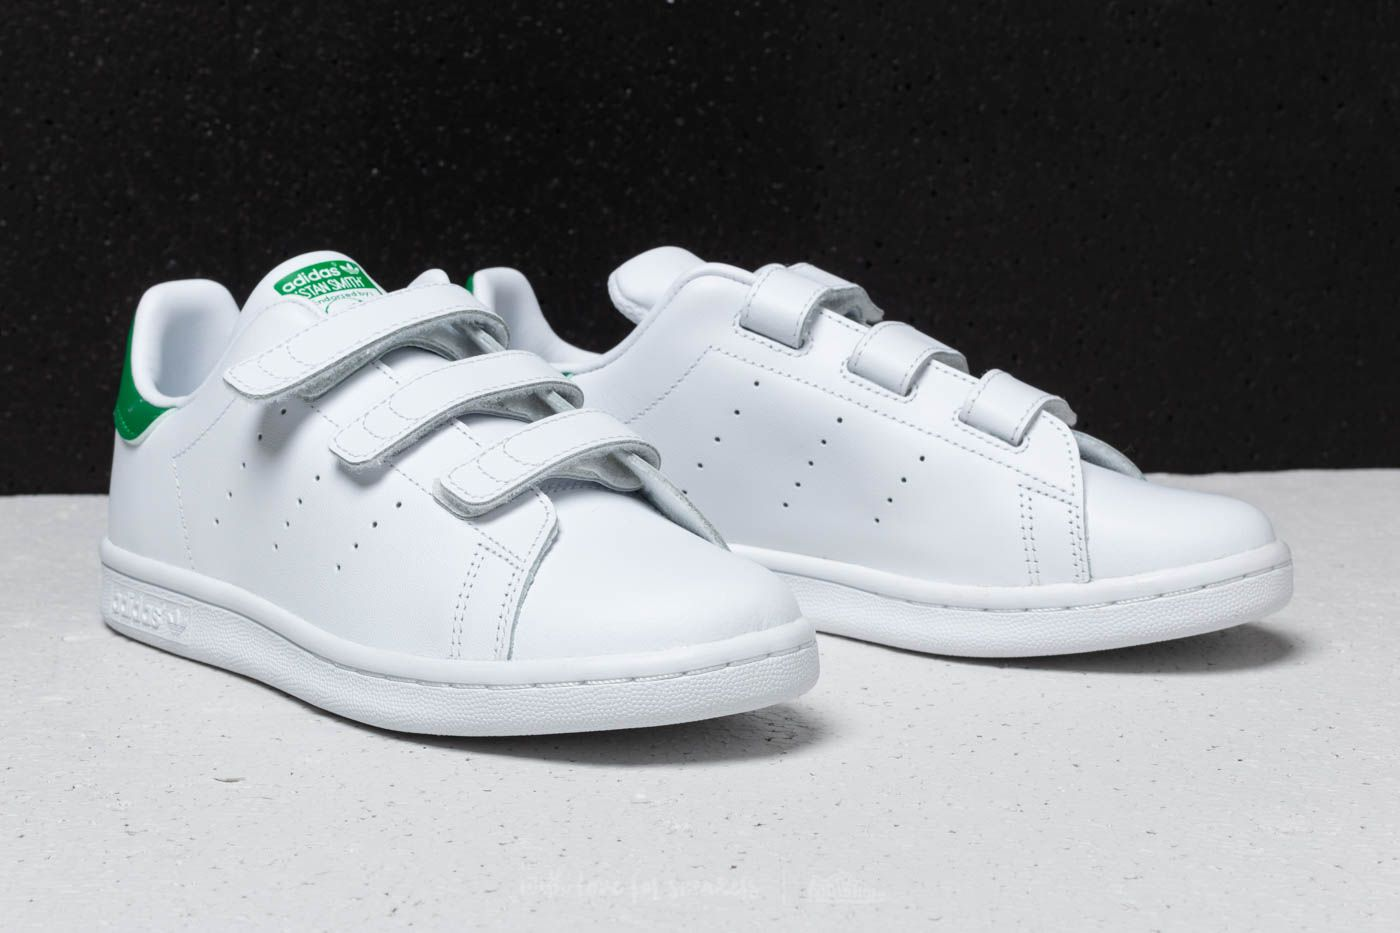 adidas Stan Smith CF C Footwear White  Green at a great price 40 € buy 8ba3598350